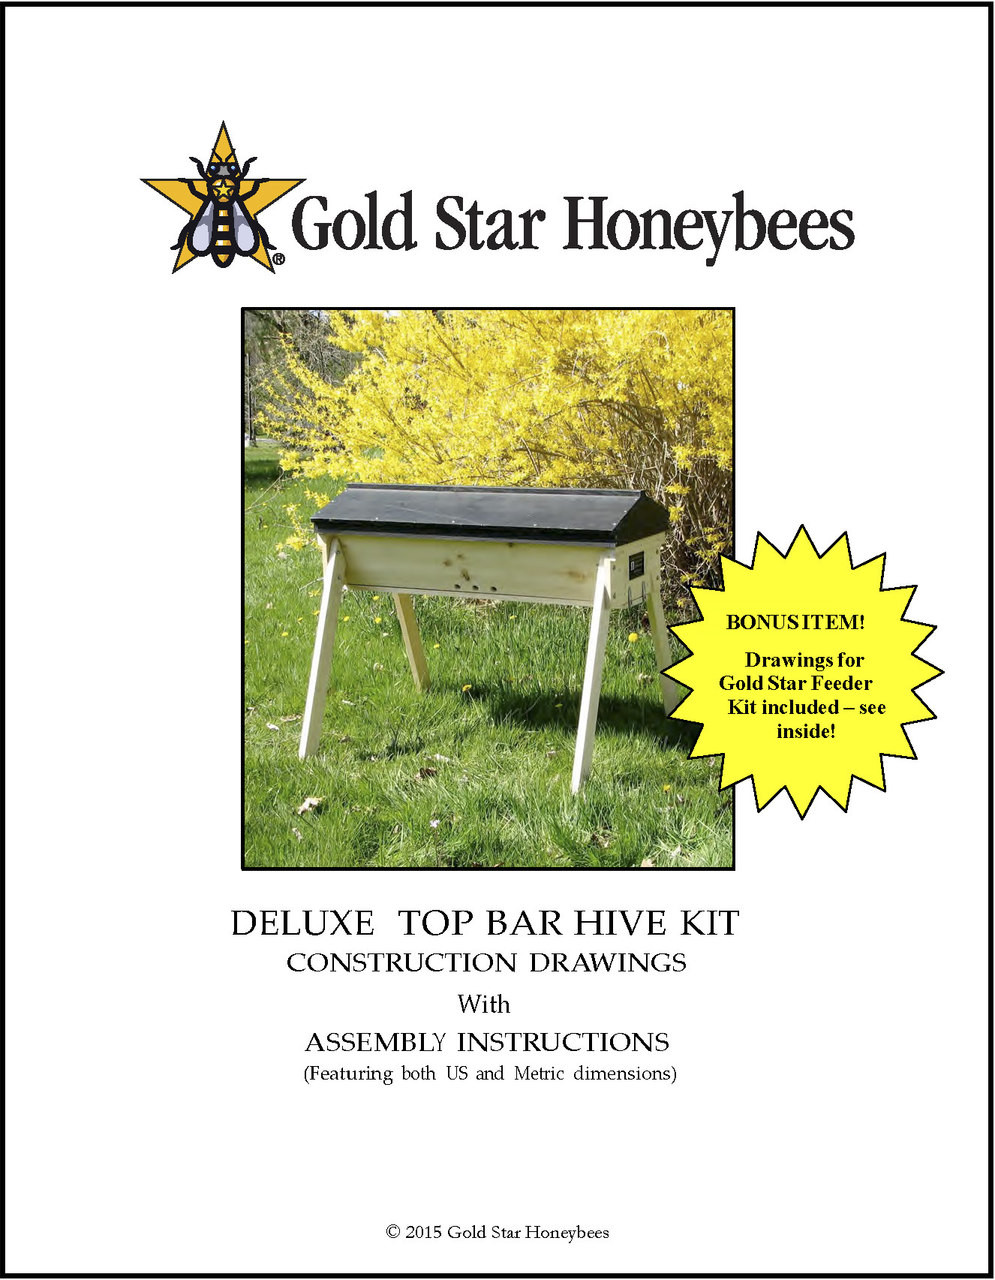 Top Bar Hive Plans for advanced woodworkers | Gold Star Honeybees